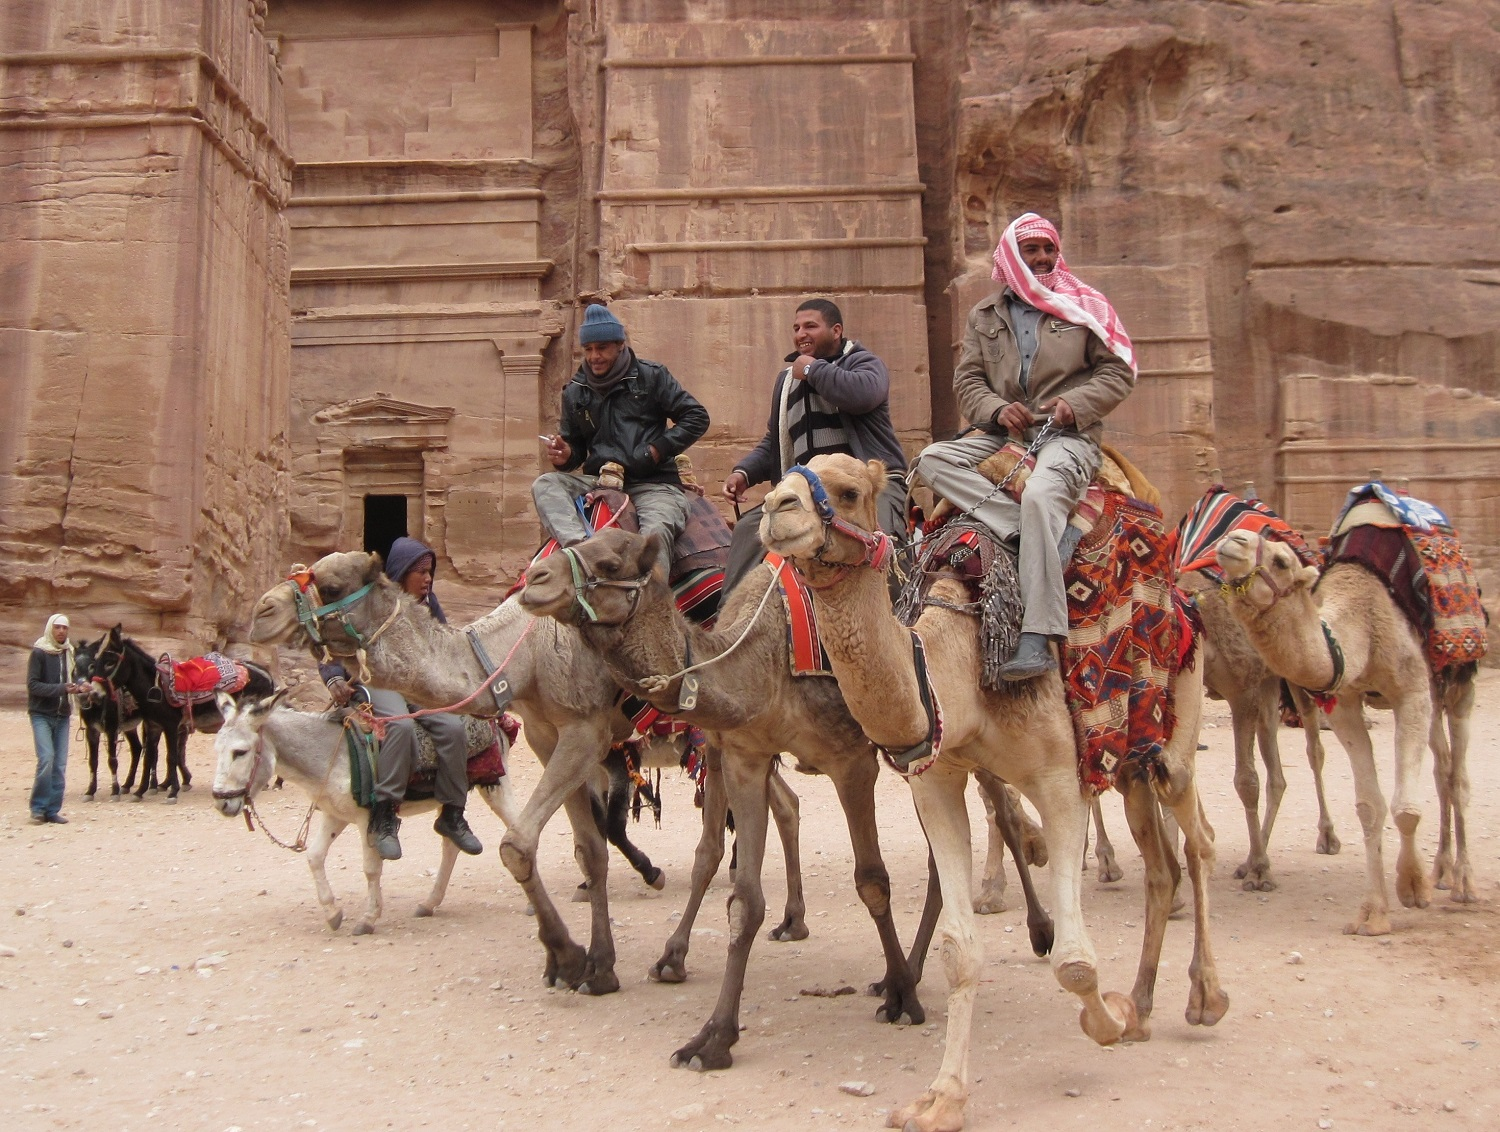 Three men riding camels in front of an ancient building in the desert